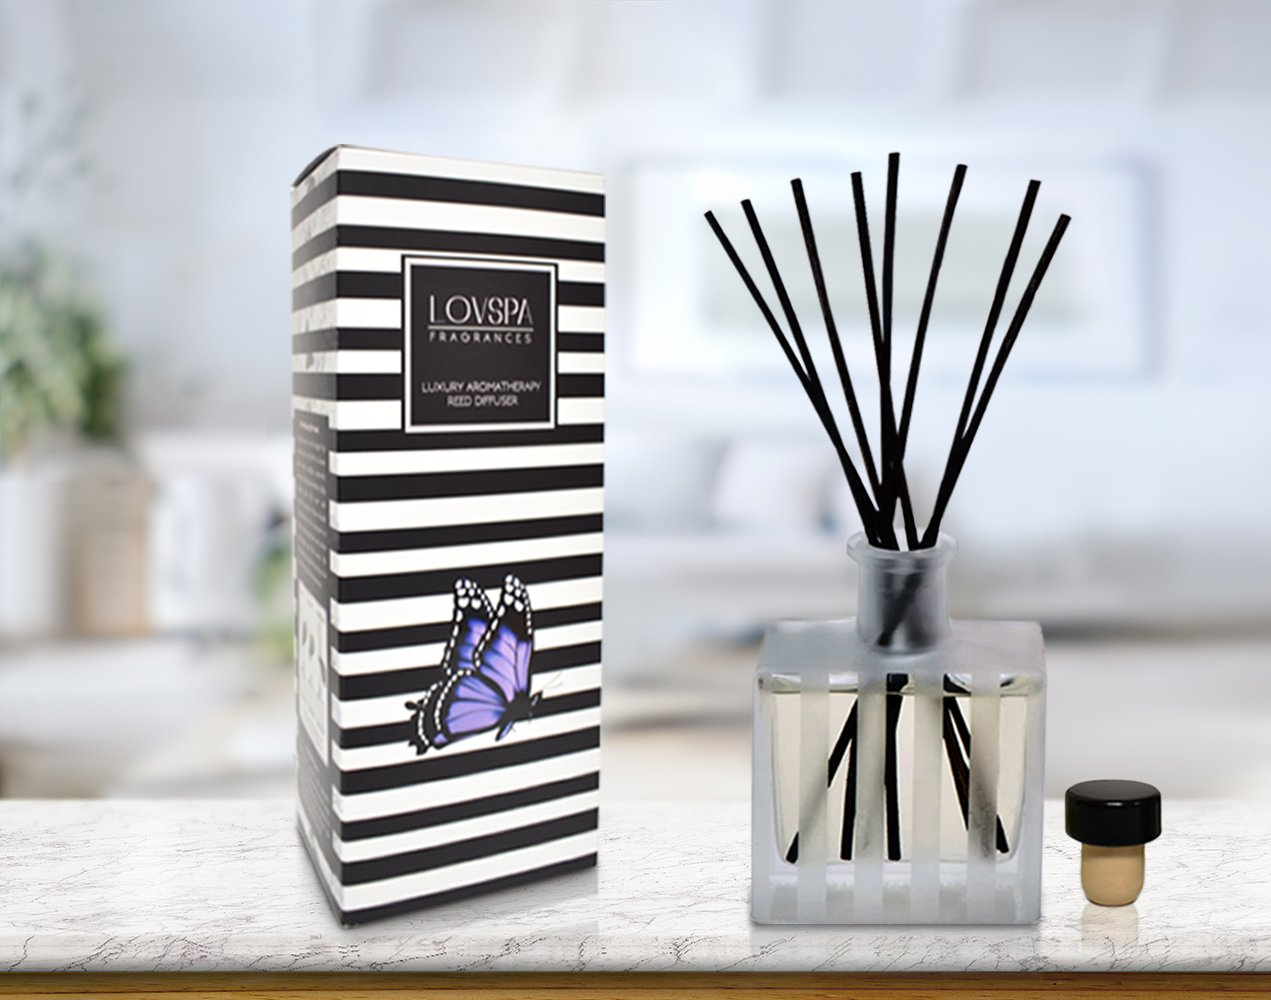 LOVSPA White Tea Reed Diffuser - Scented Sticks Set - Soothing White Tea Scent Infused with Notes of Woody Cedar and Vanilla - Air Freshener for Large Rooms - Made in The USA by LOVSPA (Image #1)